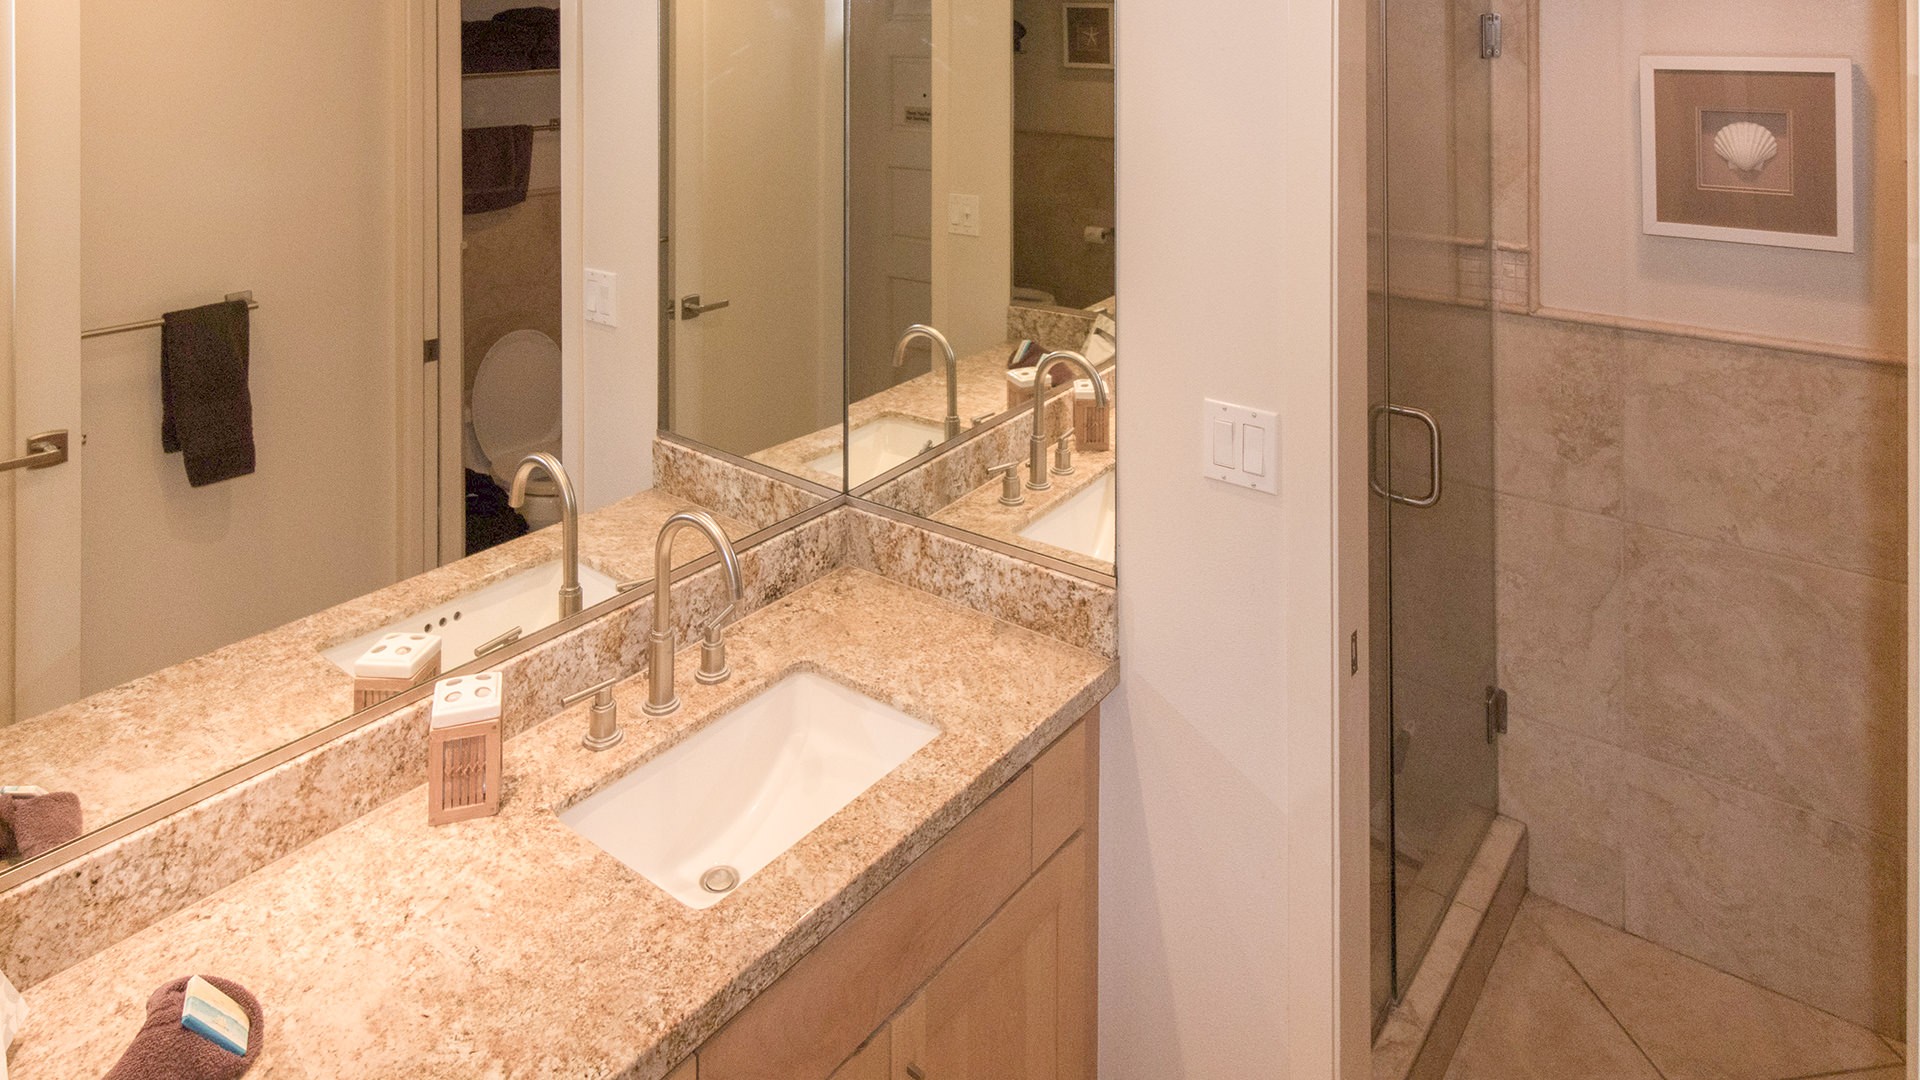 A105 Bathroom, Vanity and Shower